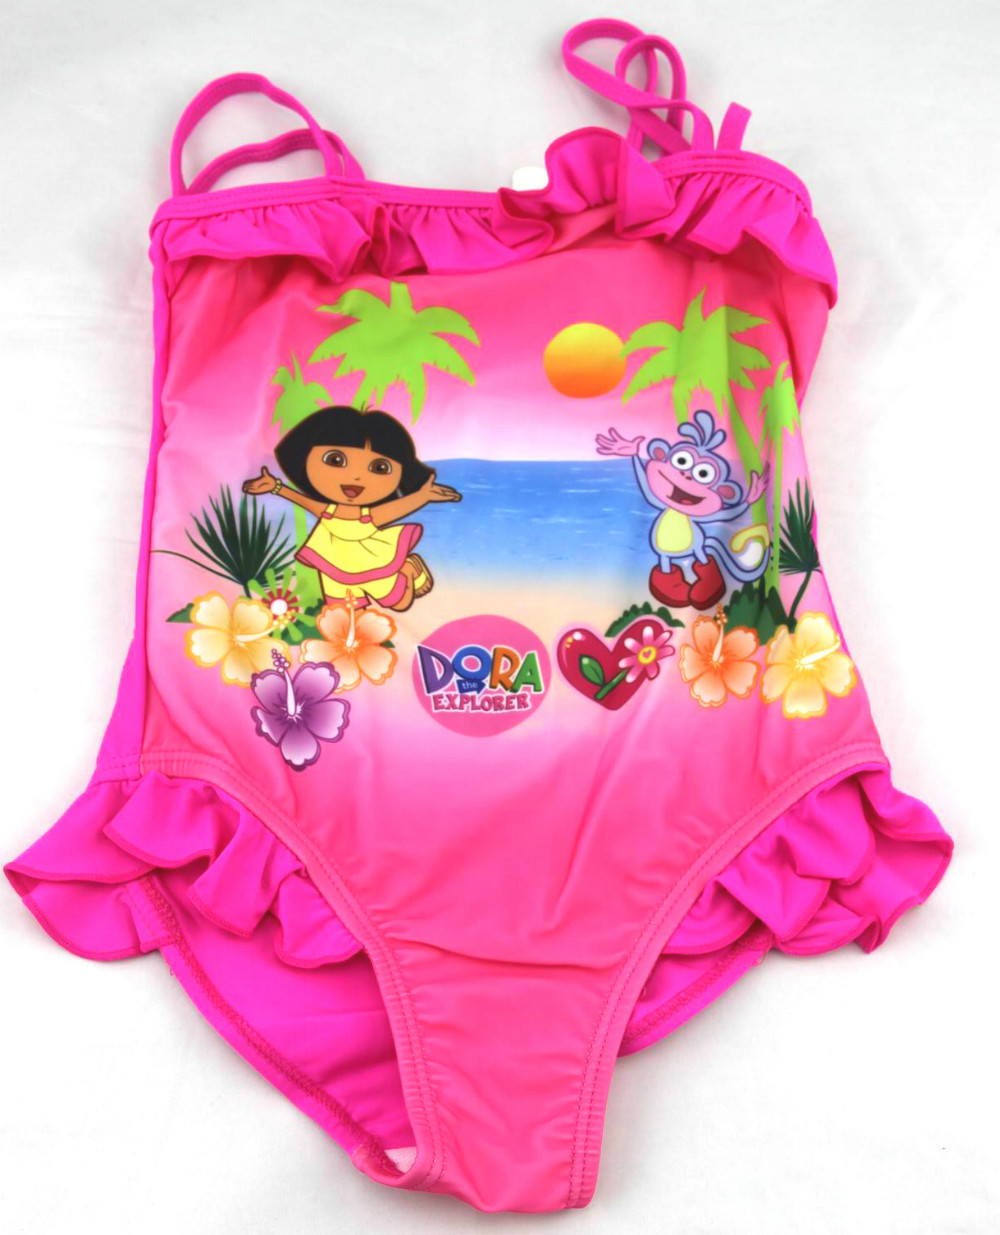 2014 Newest Children Swimwear One pieces Designs Swimsuits Girls Bathing Suits Size 3/4,7/8,9/10,11/12 - Sunny Lily Store store